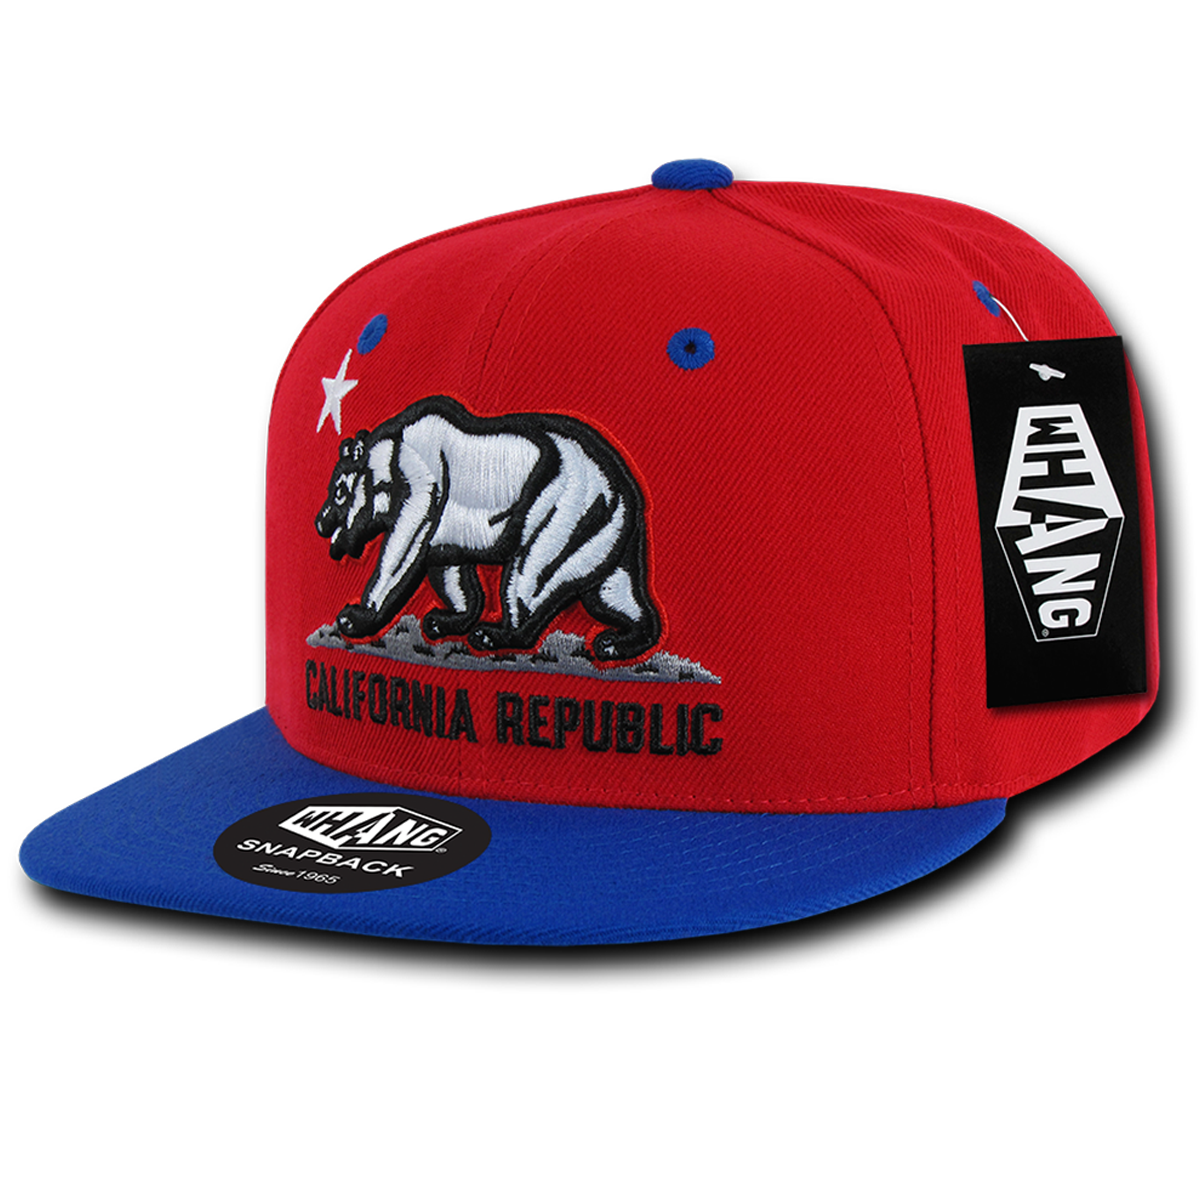 ed50c08601f California Republic Cali State Bear Flag Snapback Hat by Whang Red Royal